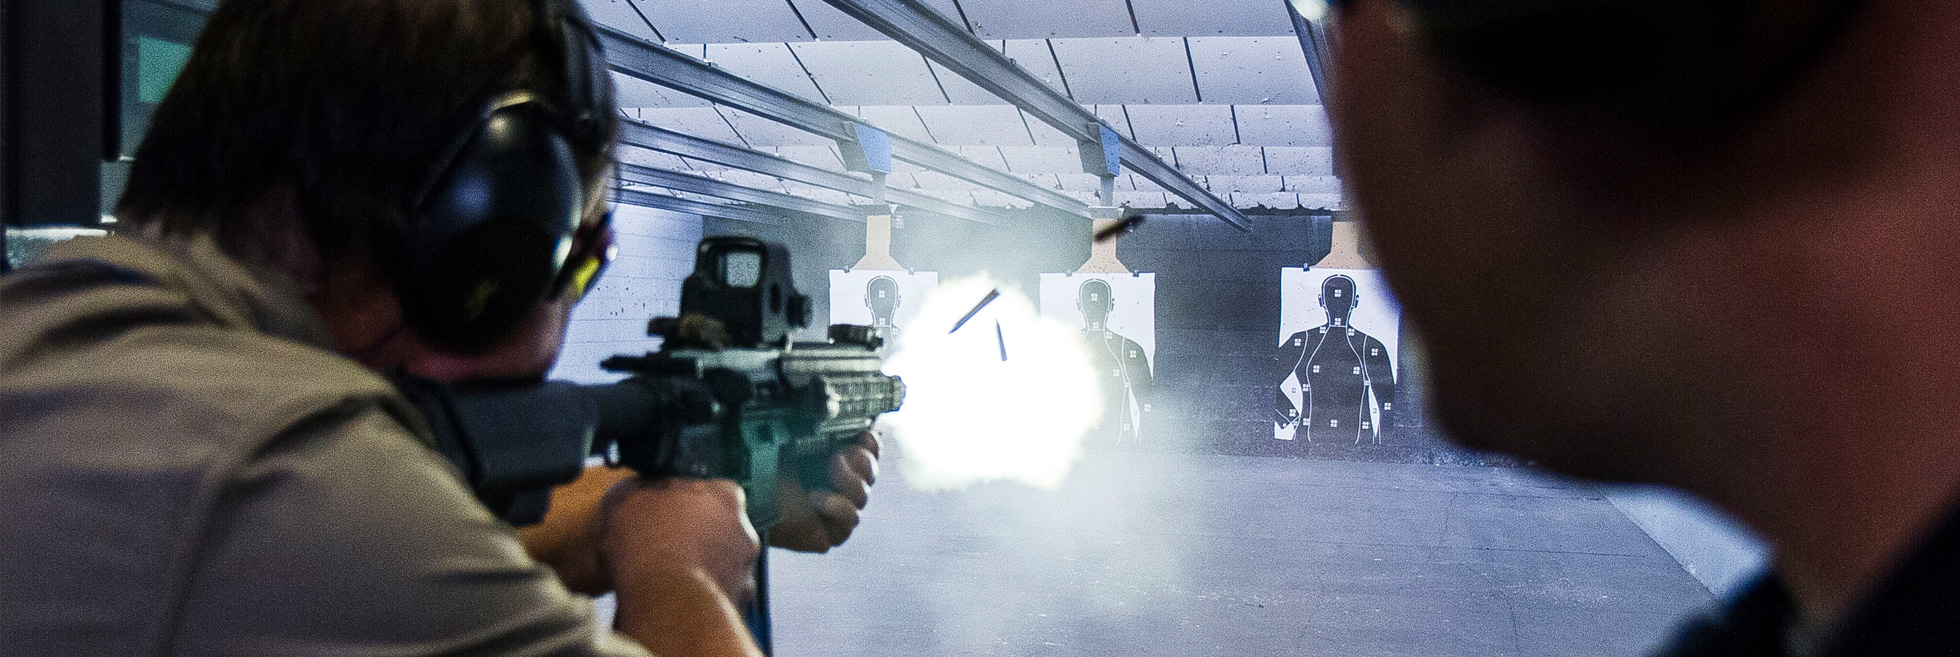 Firearm rentals including pistols, shotguns, sporting rifles, and fully automatic machine guns